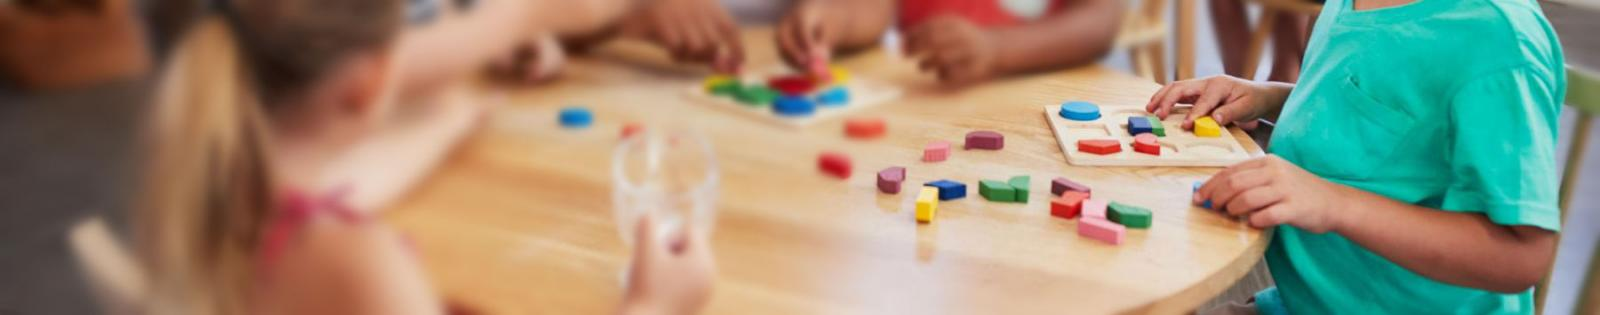 kids playing at table with blocks